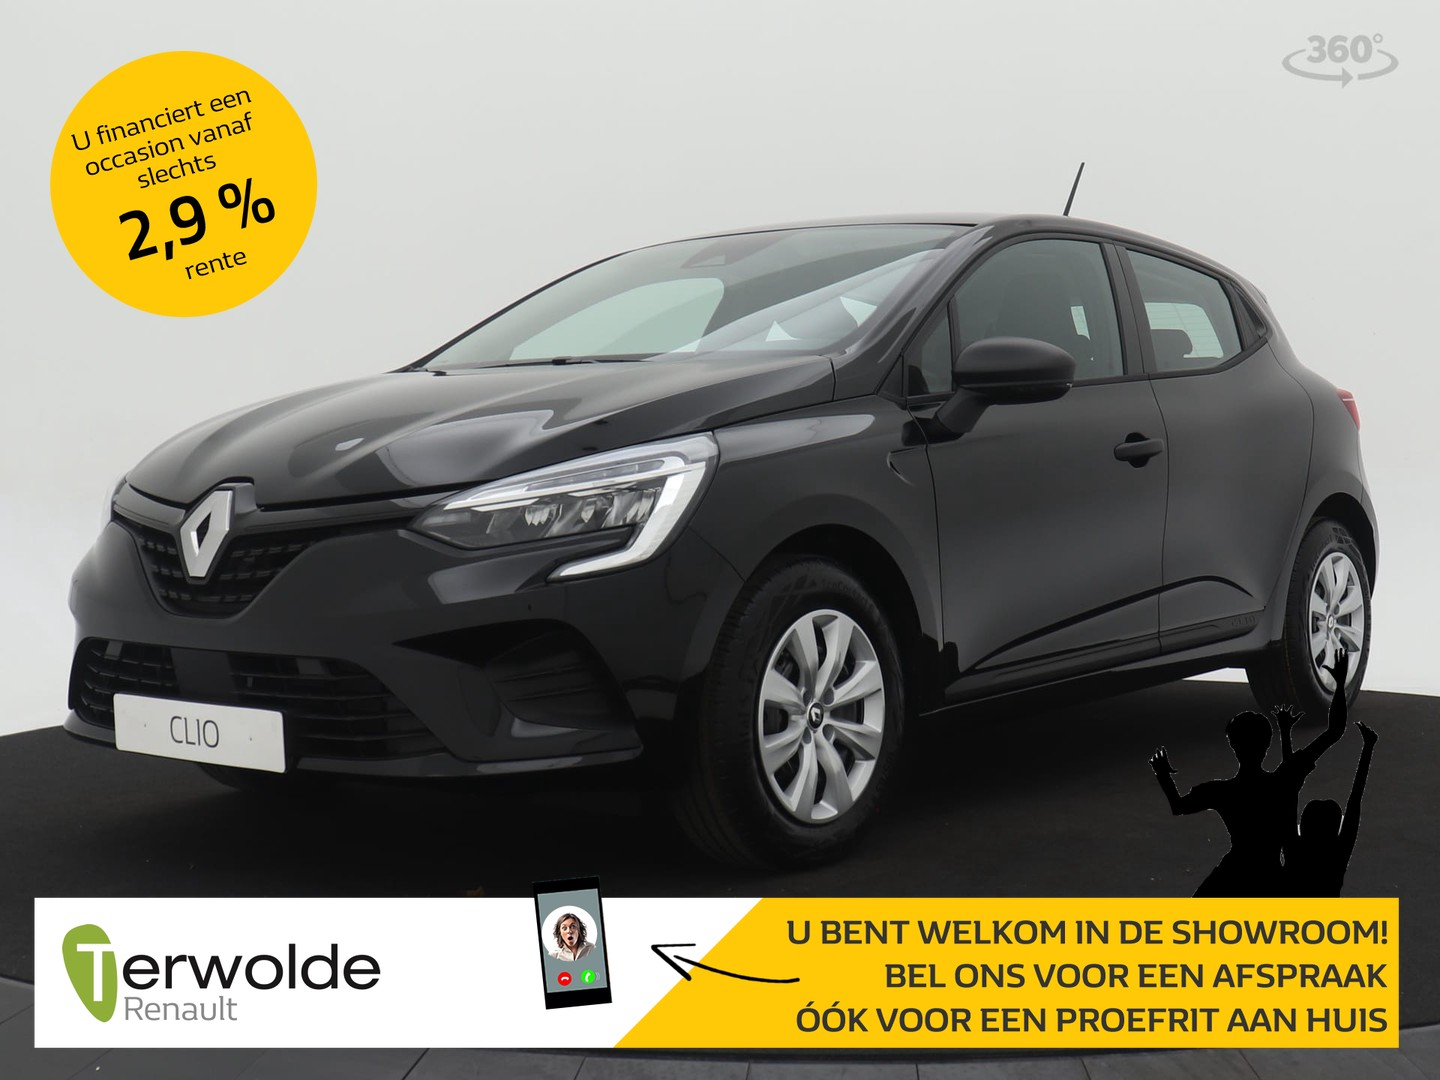 Renault Clio 1.0 tce airco